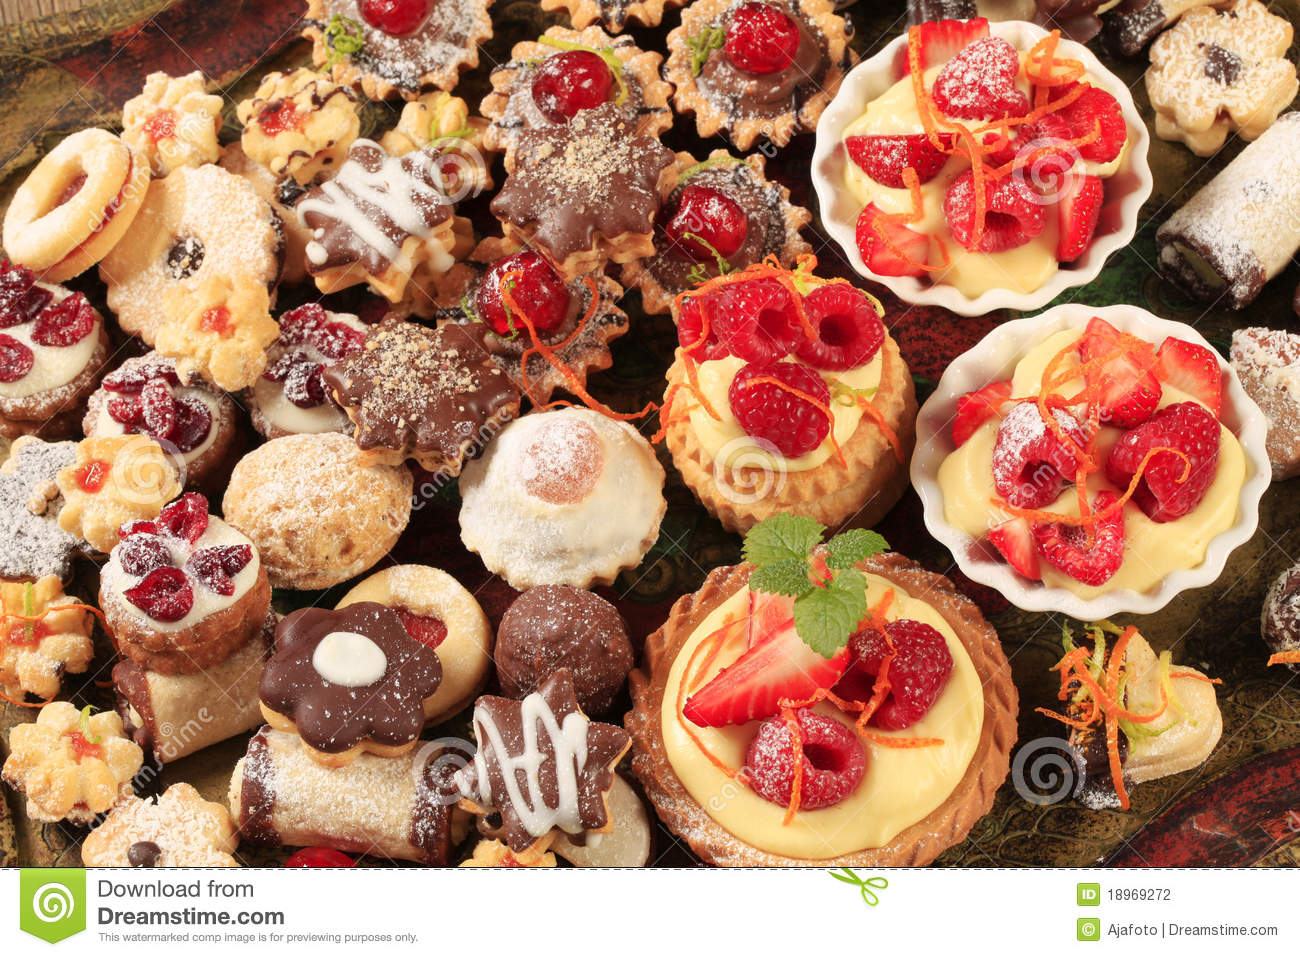 Assorted Cookies And Desserts Stock Photo Image Of